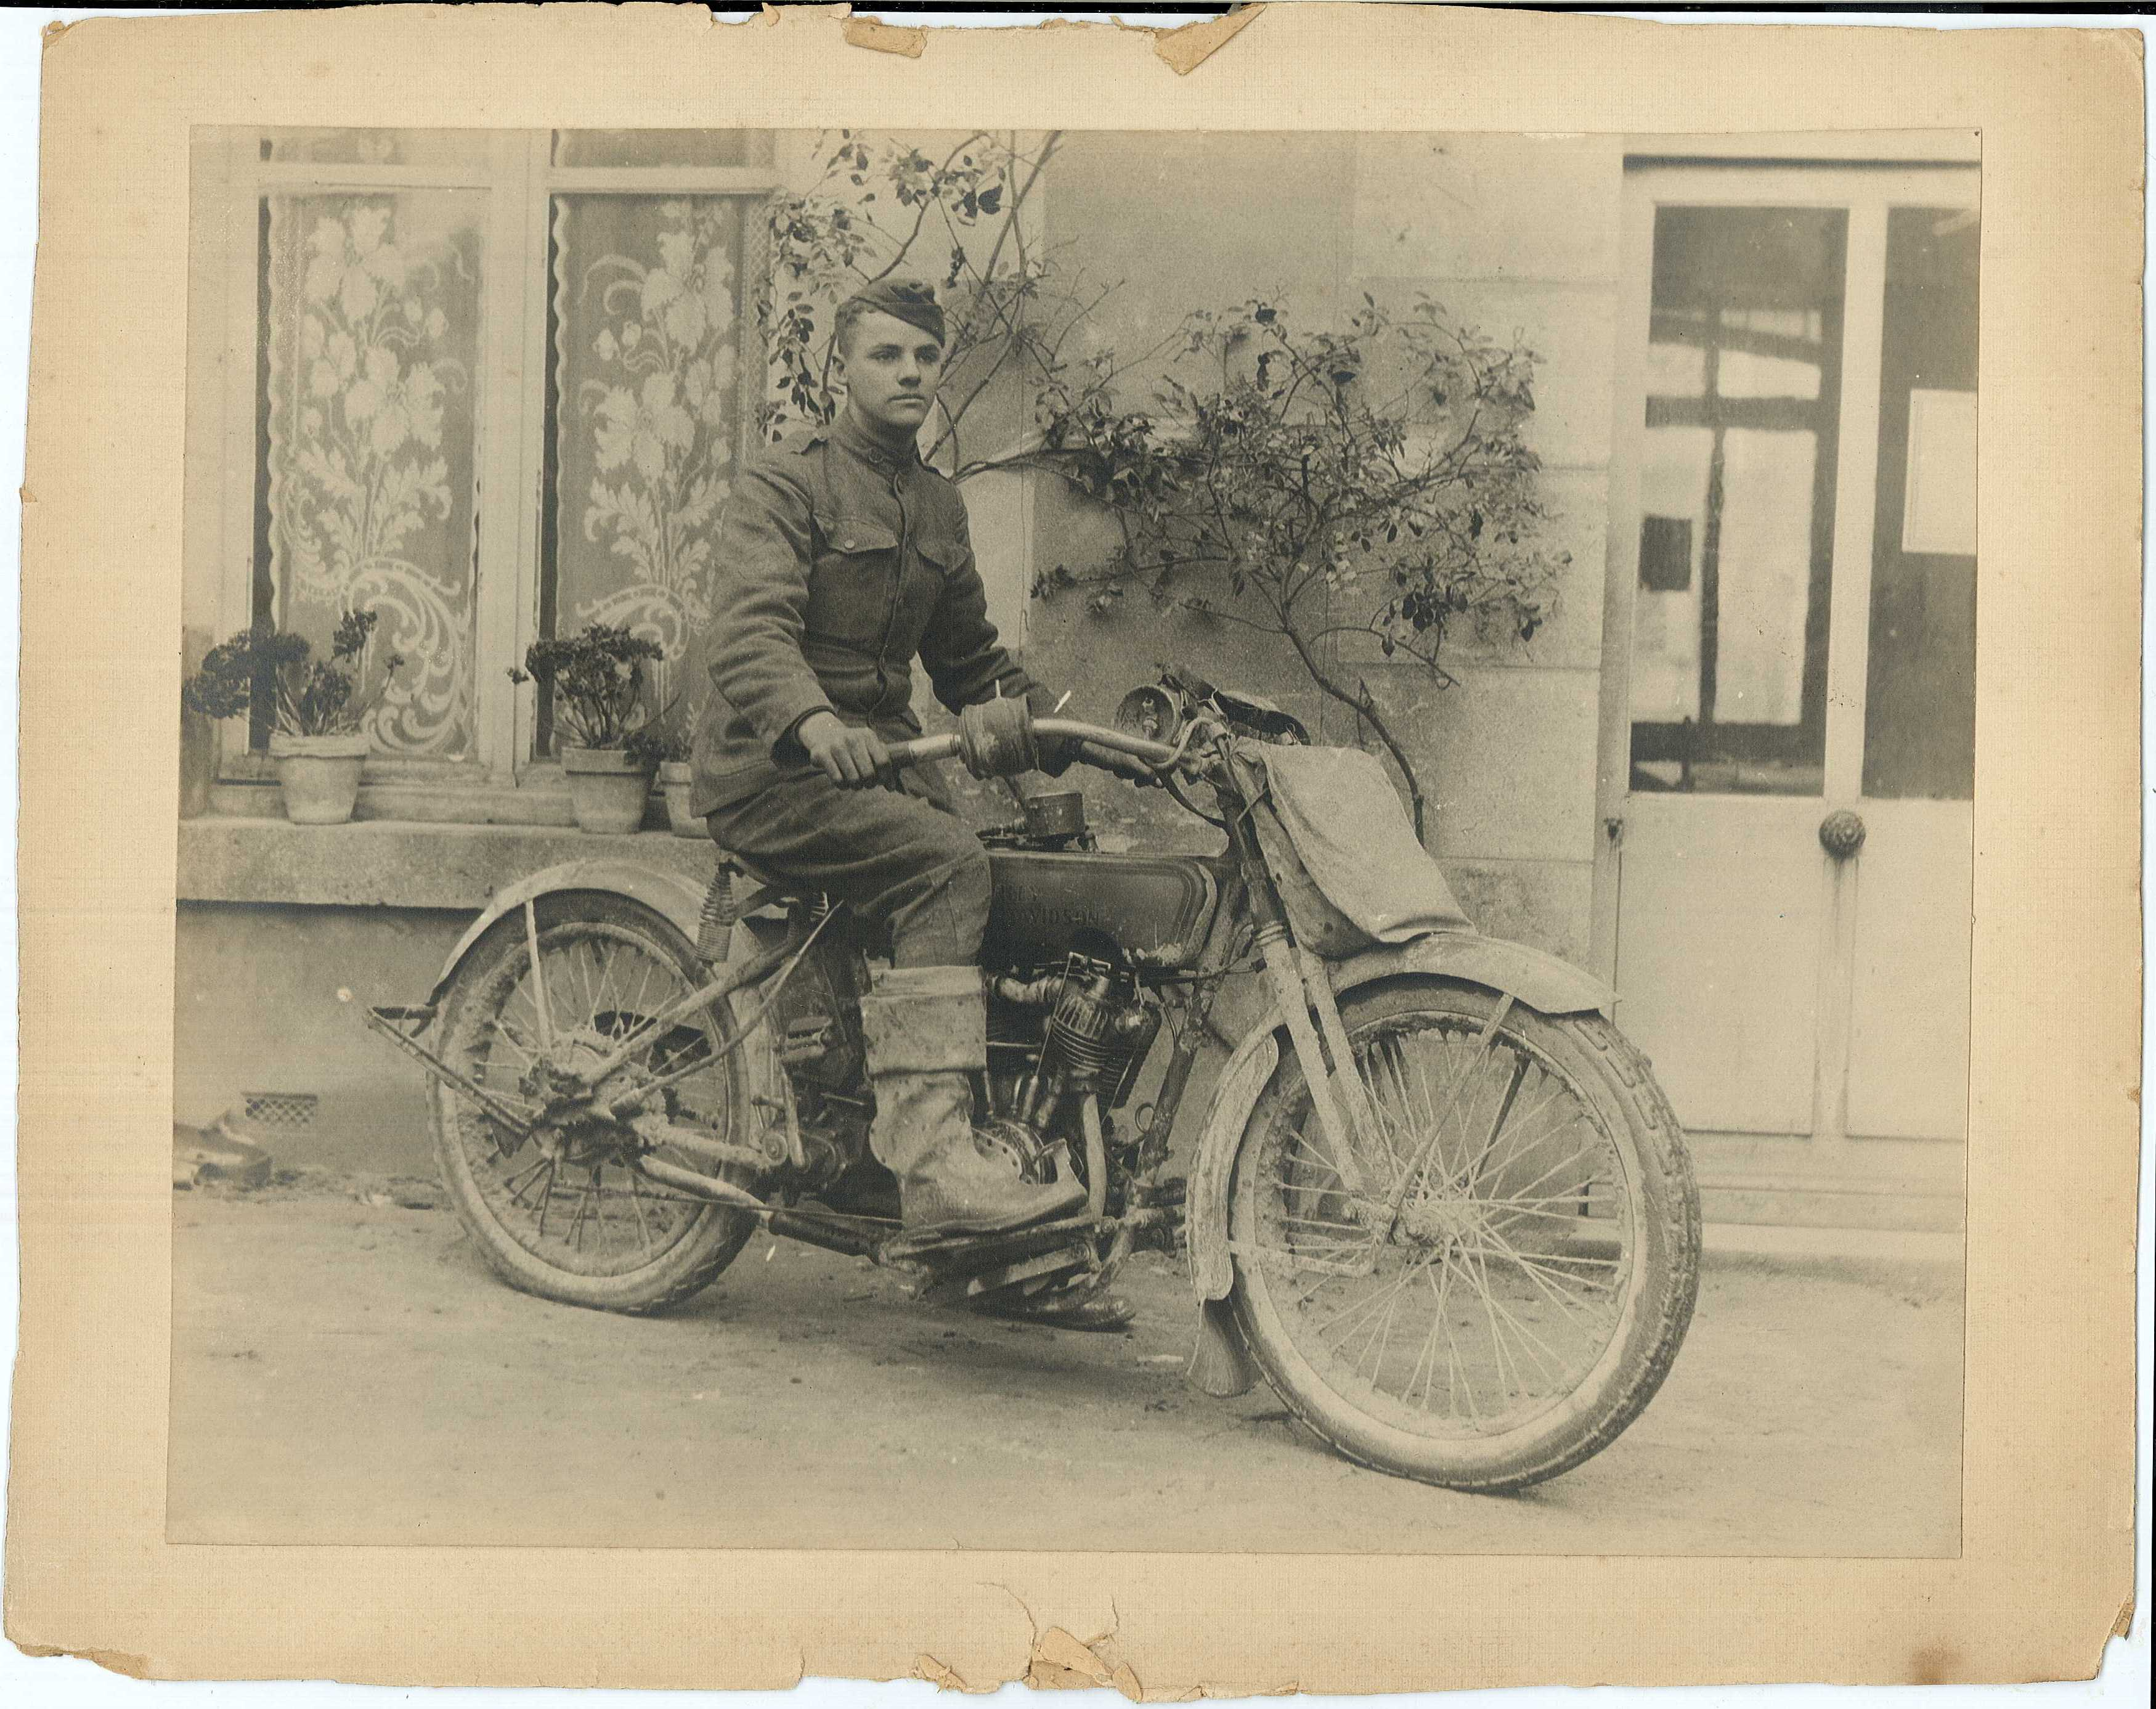 58c176adce94c Carlton Stevens on his Harley Davidson Service Motorcycle in France 1919